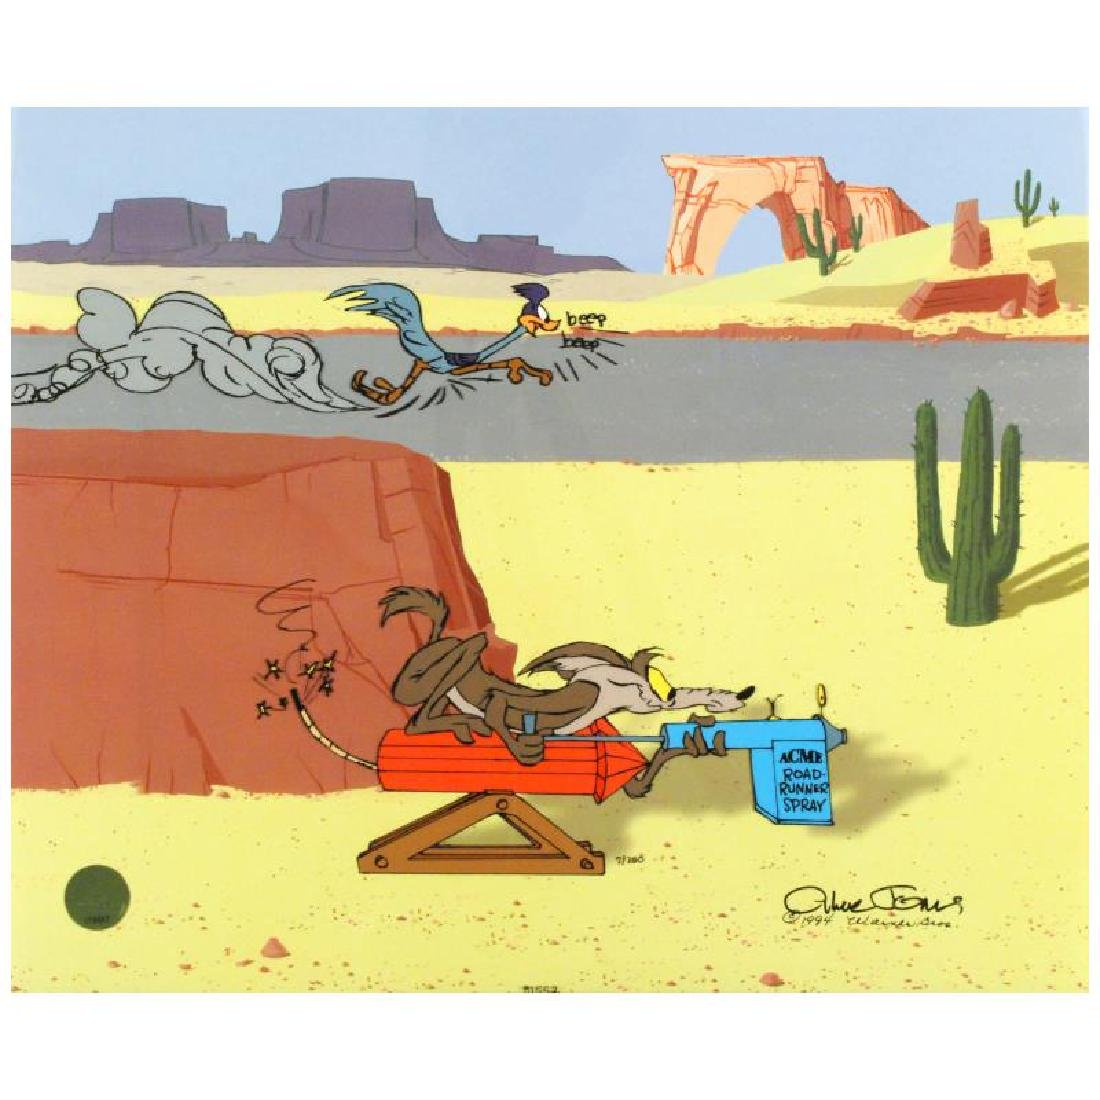 """Acme Road Runner Spray"" Sold Out Limited Edition"